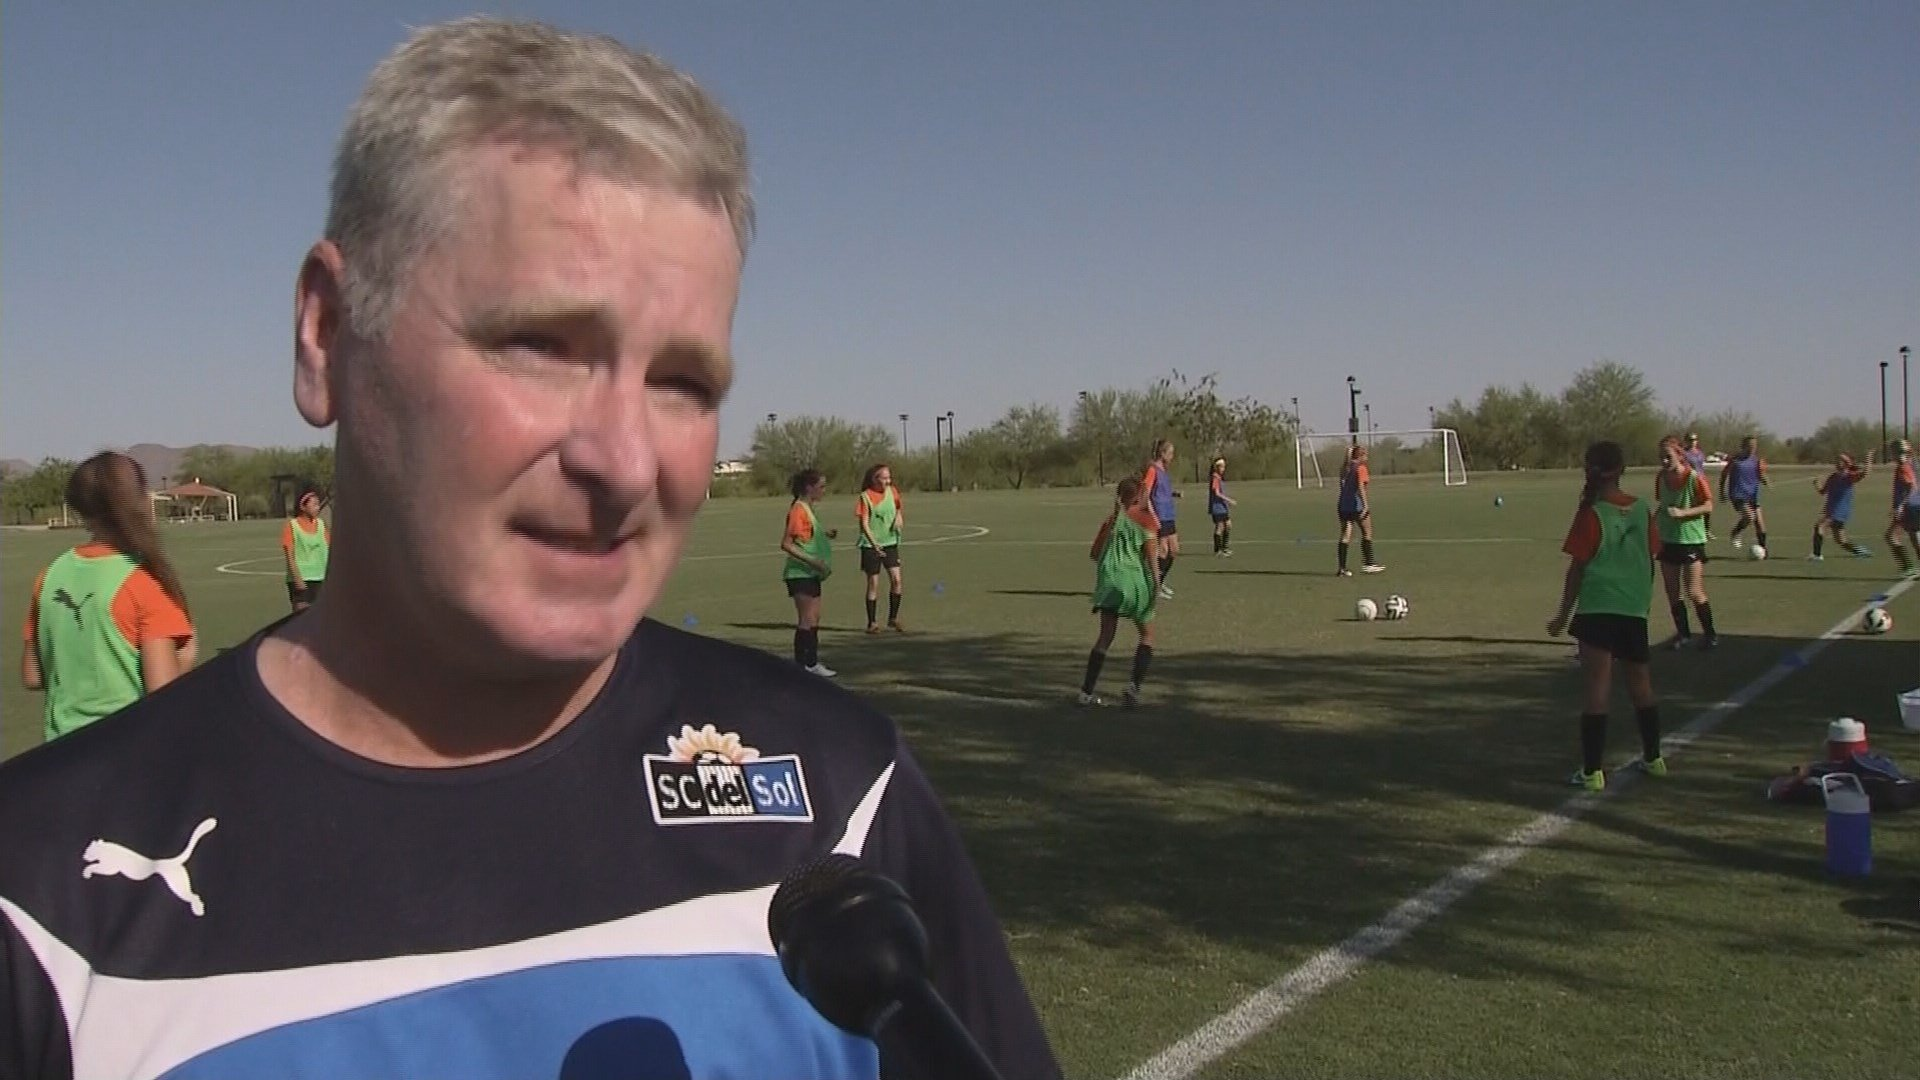 Paul Lester was Johnston's coach when she was 11 until she was 14. (Source: KPHO/KTVK)